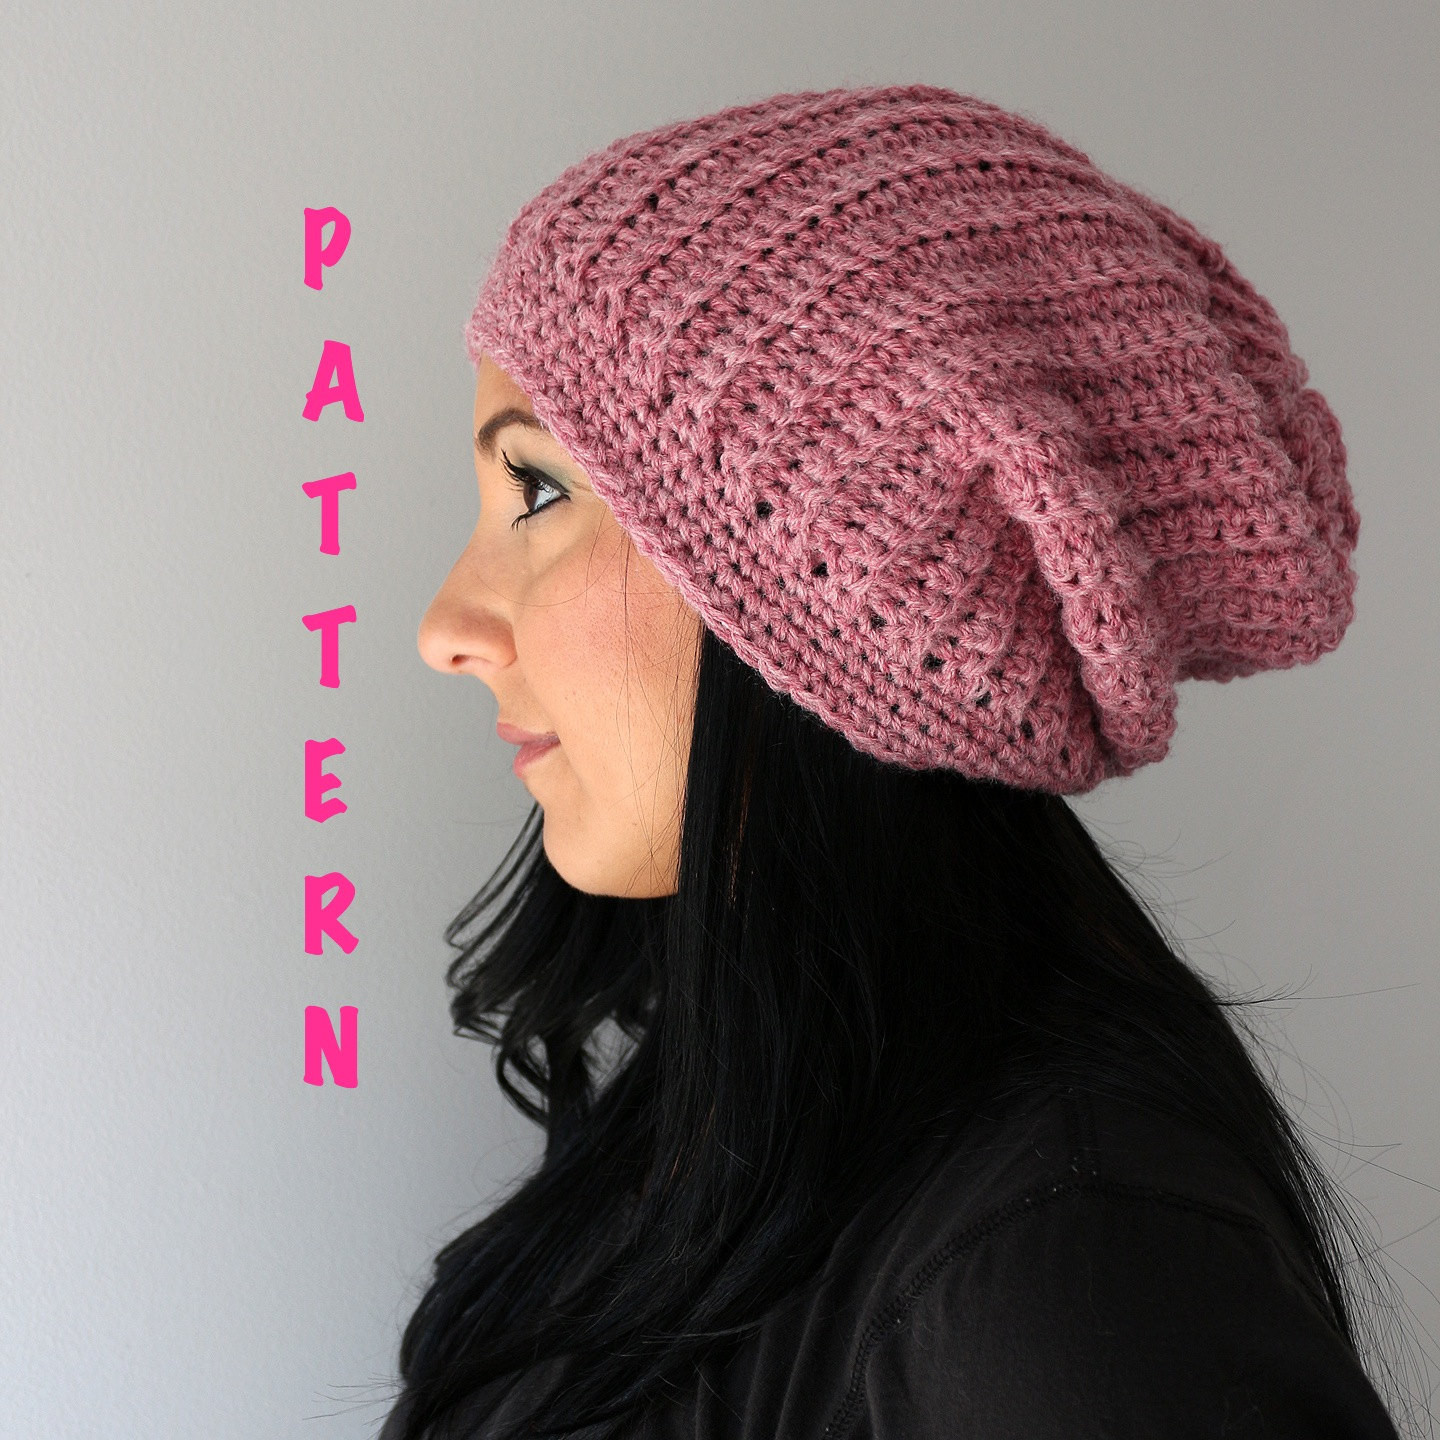 Awesome Crochet Pattern Ribbed Slouchy Beanie Hat Crochet Ribbed Crochet Adult Beanie Of Lovely 47 Pics Crochet Adult Beanie